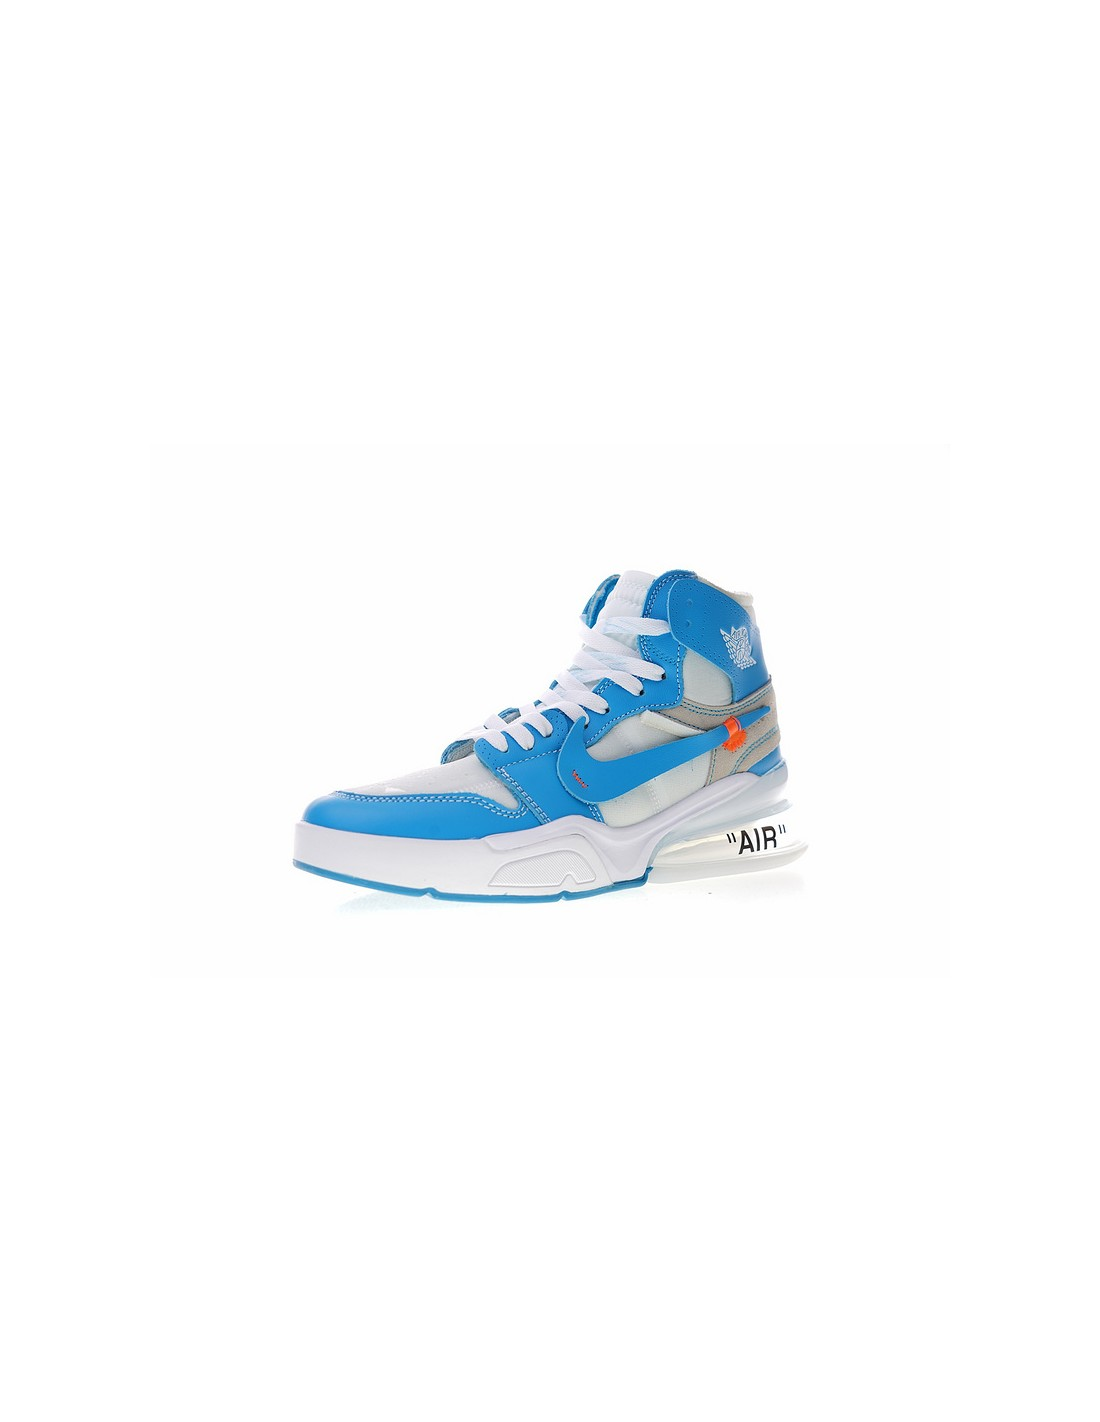 Pour Homme 270 1 Air Force Jordan Off X White Custom PZkiwXOuT